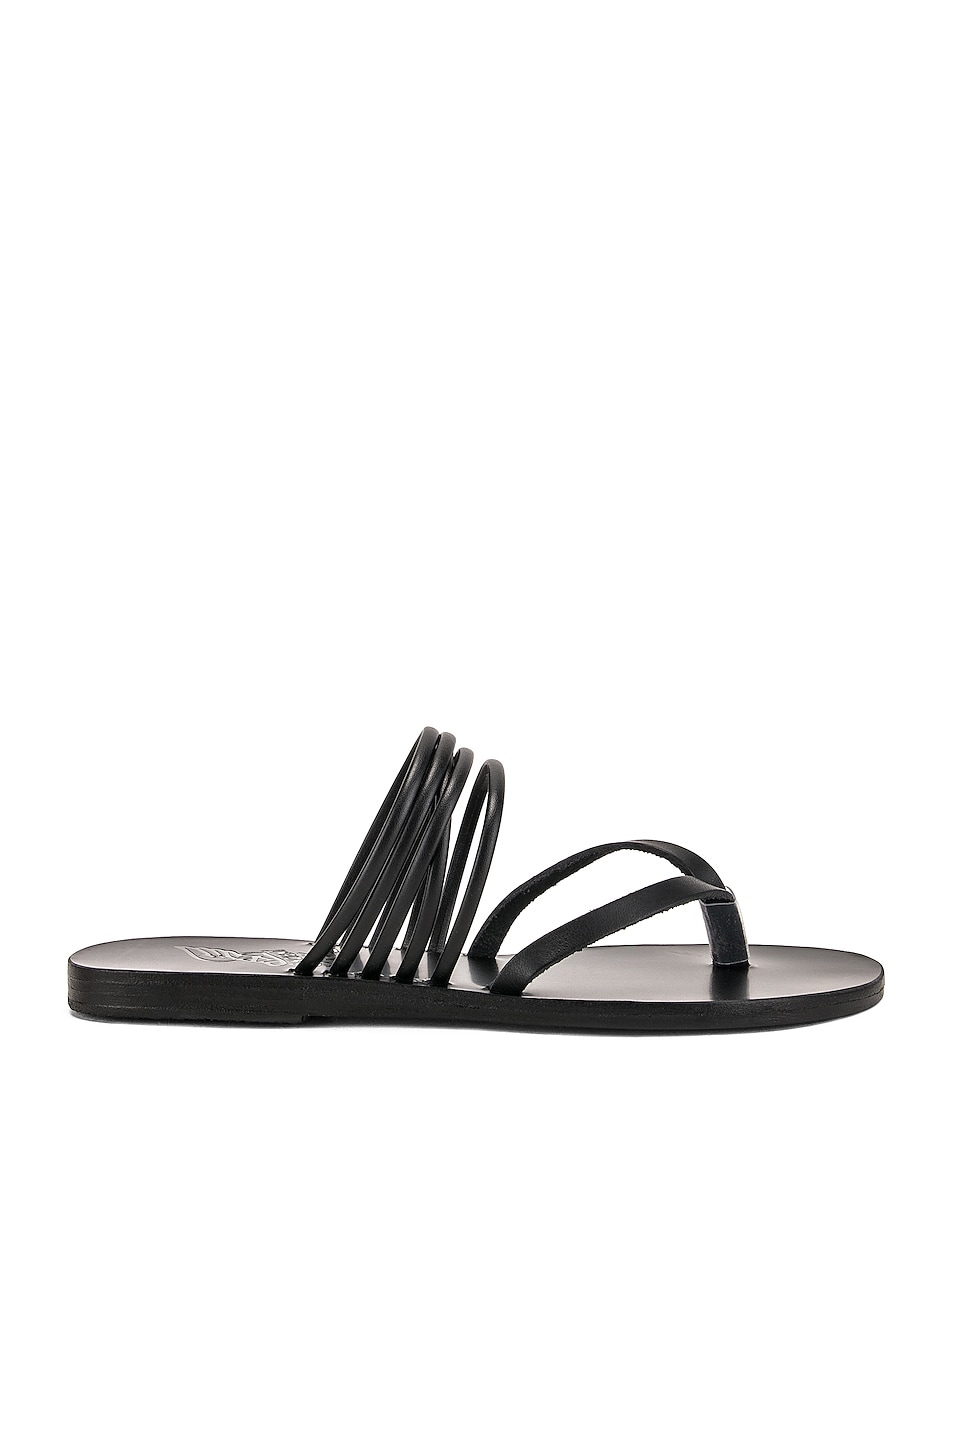 Image 1 of Ancient Greek Sandals Kilini Sandals in Black